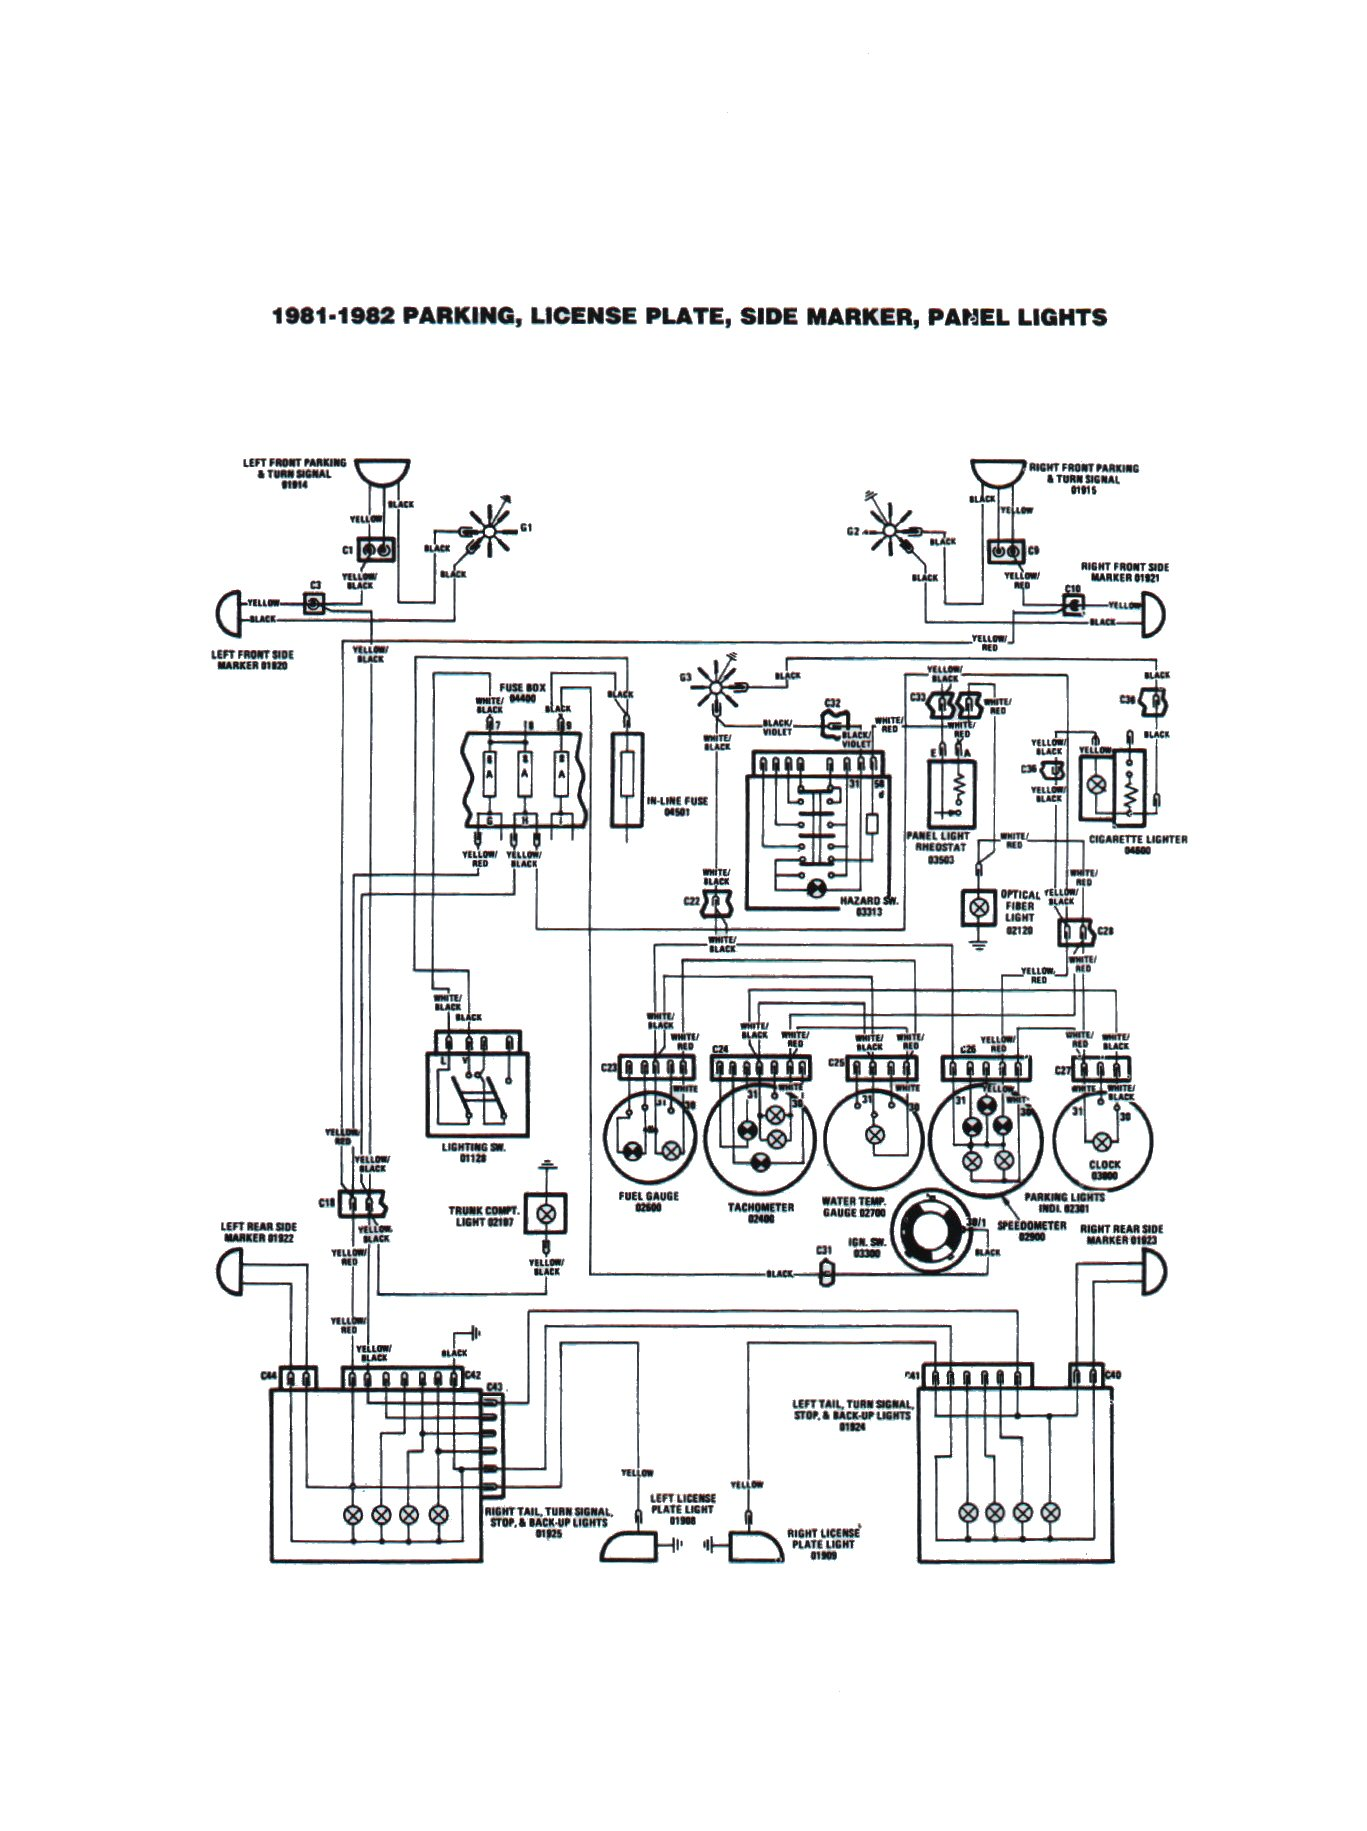 On Repeated Request additionally Wire Diagrams in addition Ford Fiesta Mk6 Bezpieczniki Wersja Europejska further On Repeated Request further Ford Fiesta Classic 2010 Fuse Box Diagram India Version. on horn indicators hazard circuits